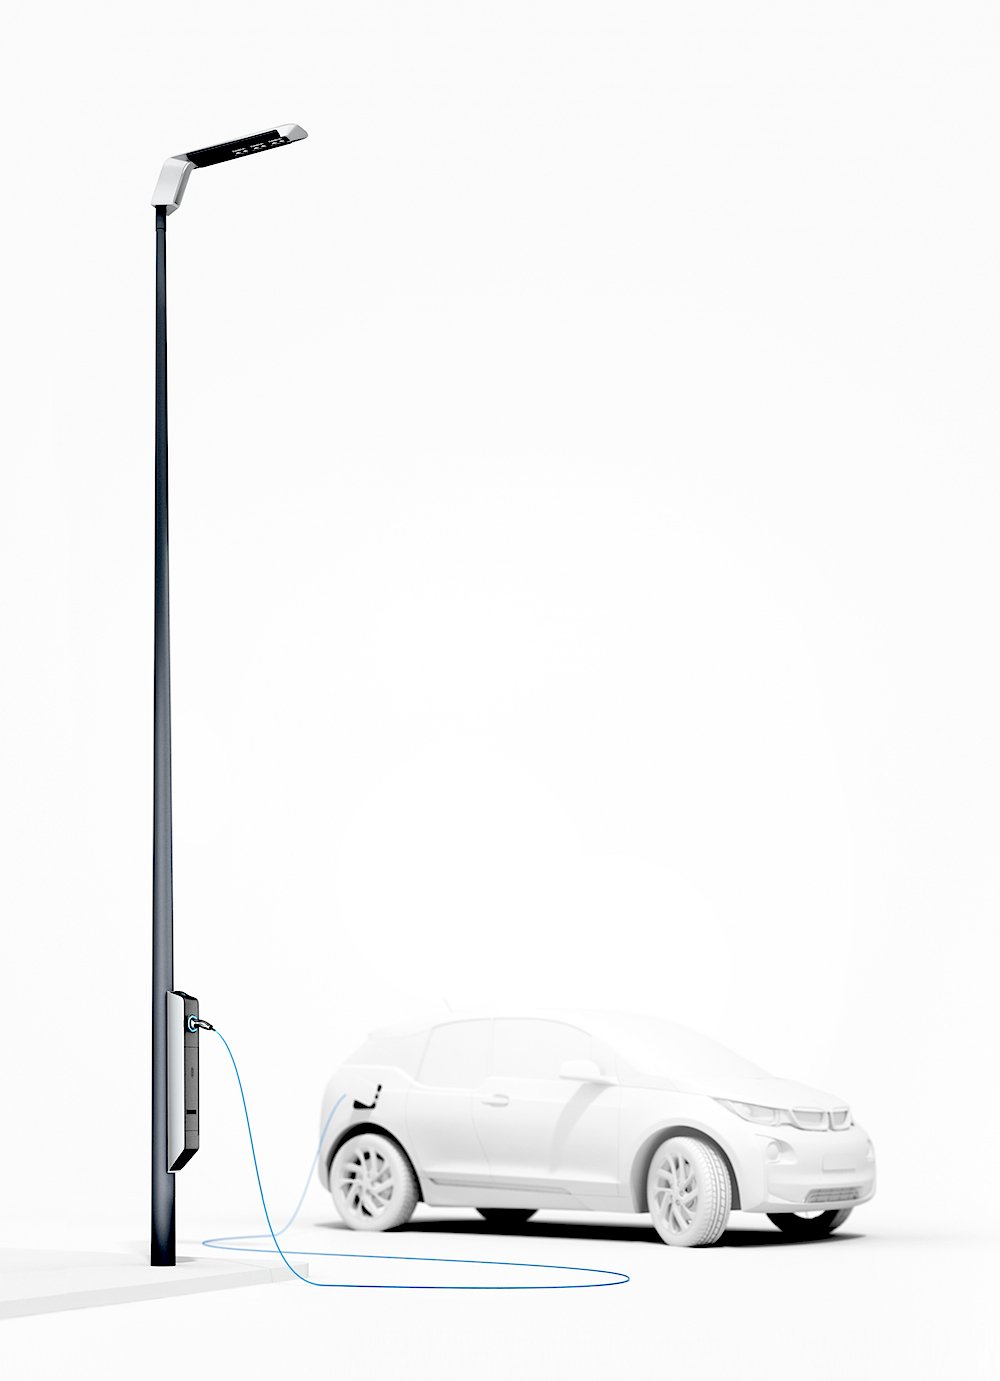 Das BMW-Konzept Light and Charge.